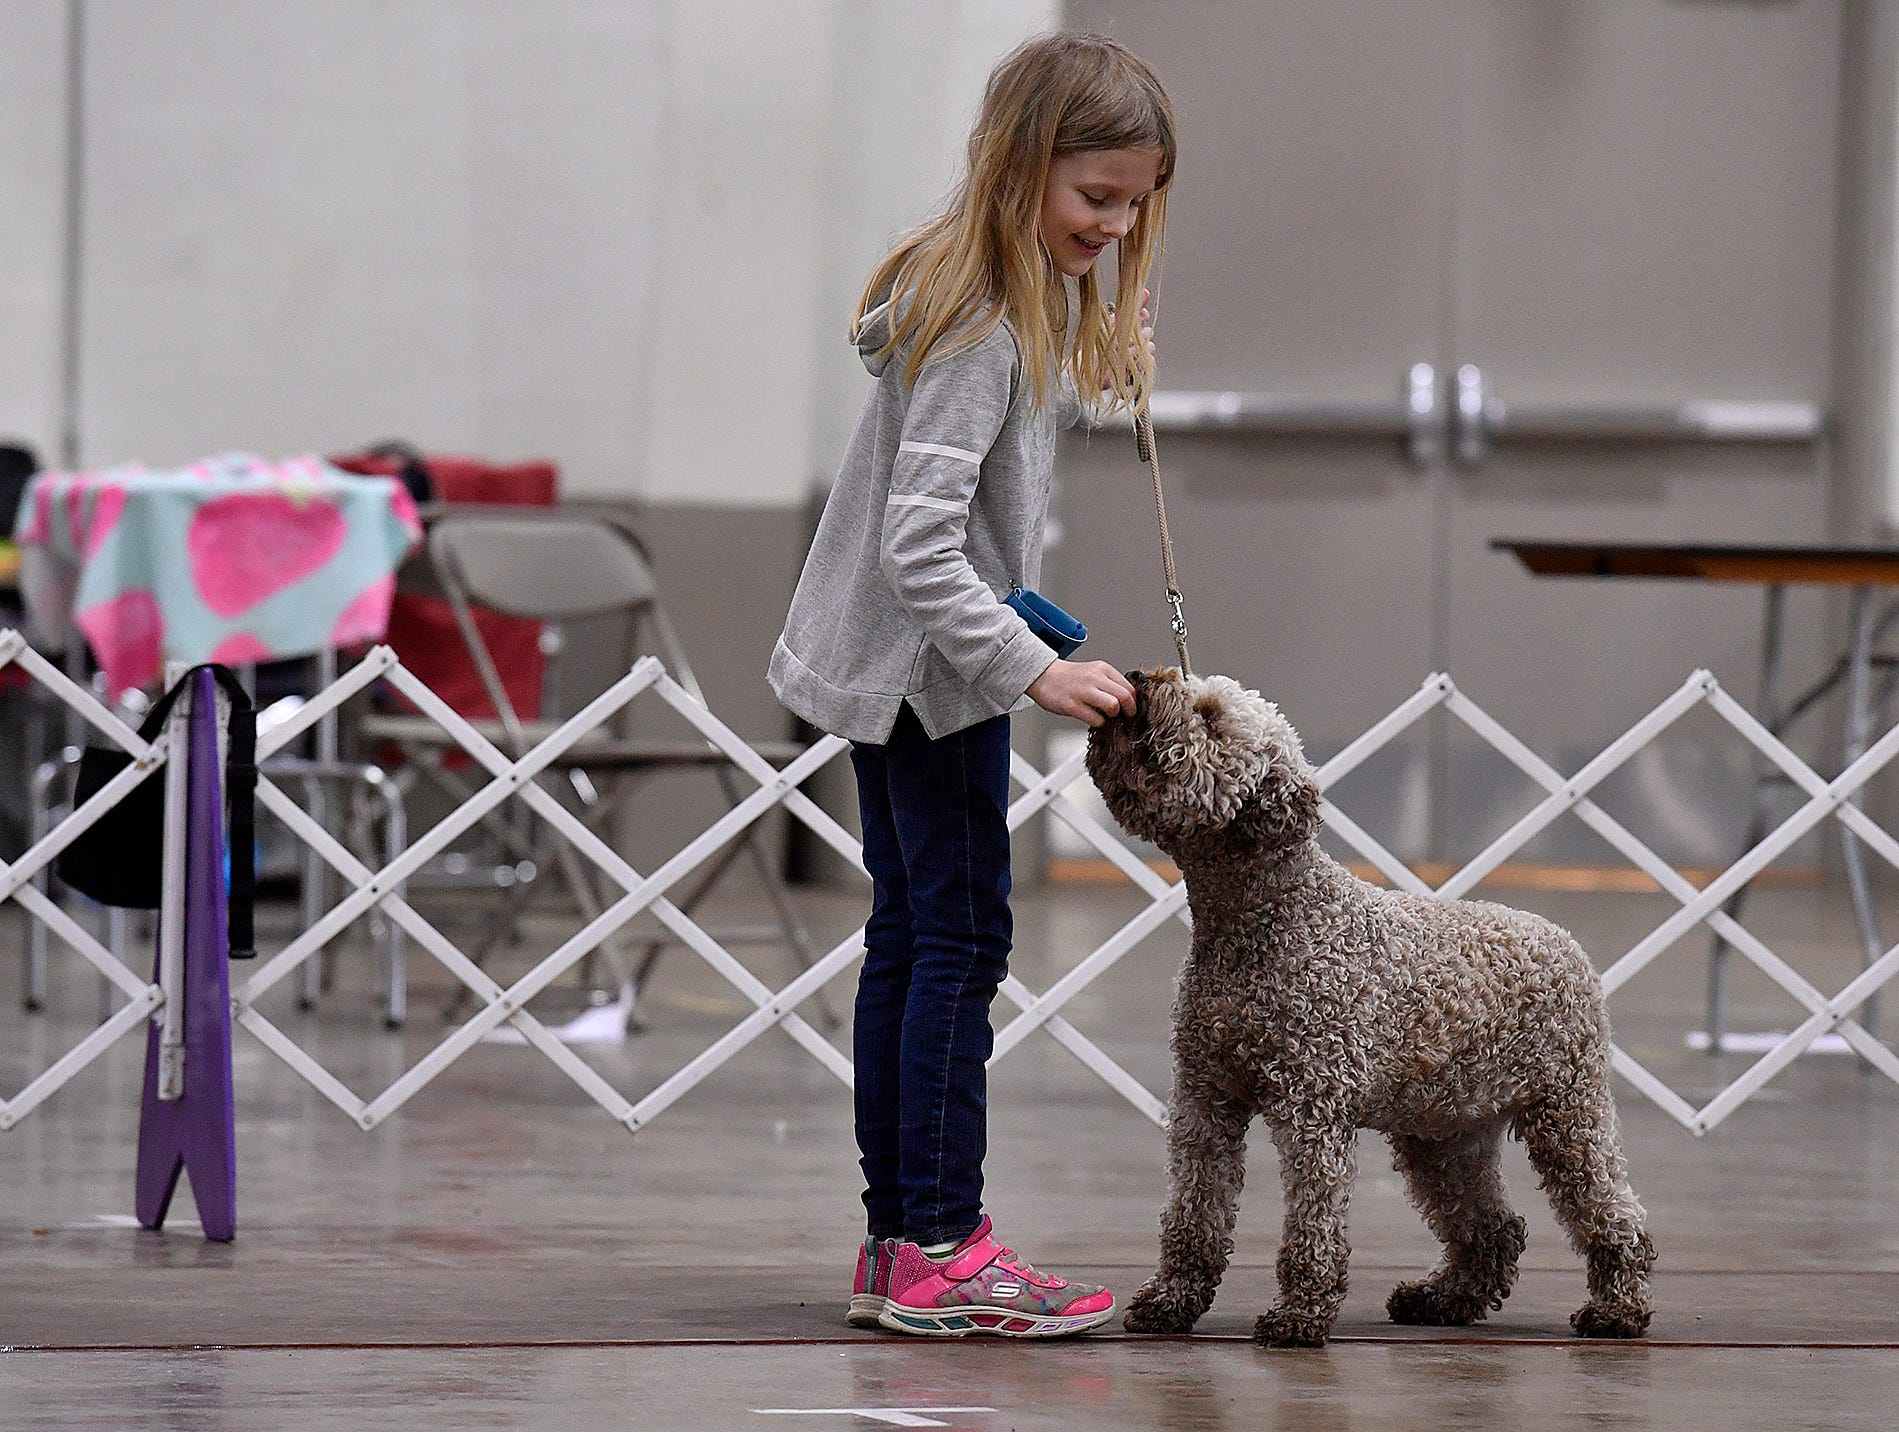 Isabella Stephenson, 8, works with her Lagotto Romagnolo puppy Cinnamon between judging at the annual Celtic Classic Dog Show, Wednesday, March 13, 2018.John A. Pavoncello photo